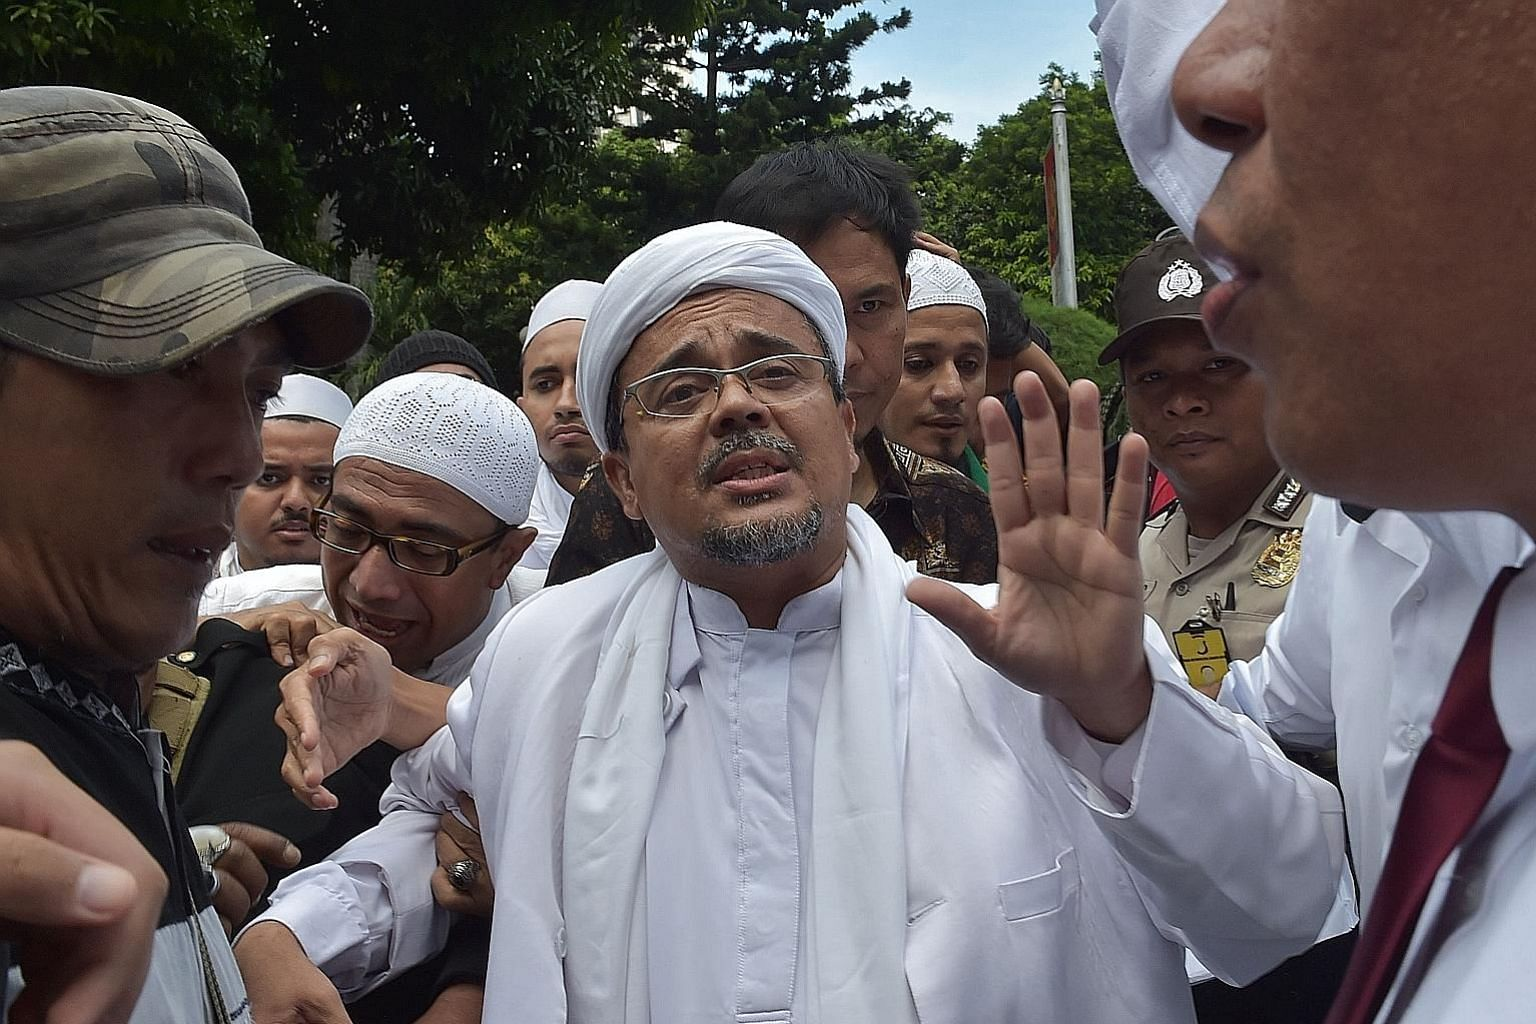 Mr Rizieq arriving at the Jakarta police headquarters on Jan 23. The Islamic Defenders' Front chairman had been jailed twice previously - in 2003 for inciting his followers to violently harass people at nightspots in Jakarta, and in 2008 for attackin